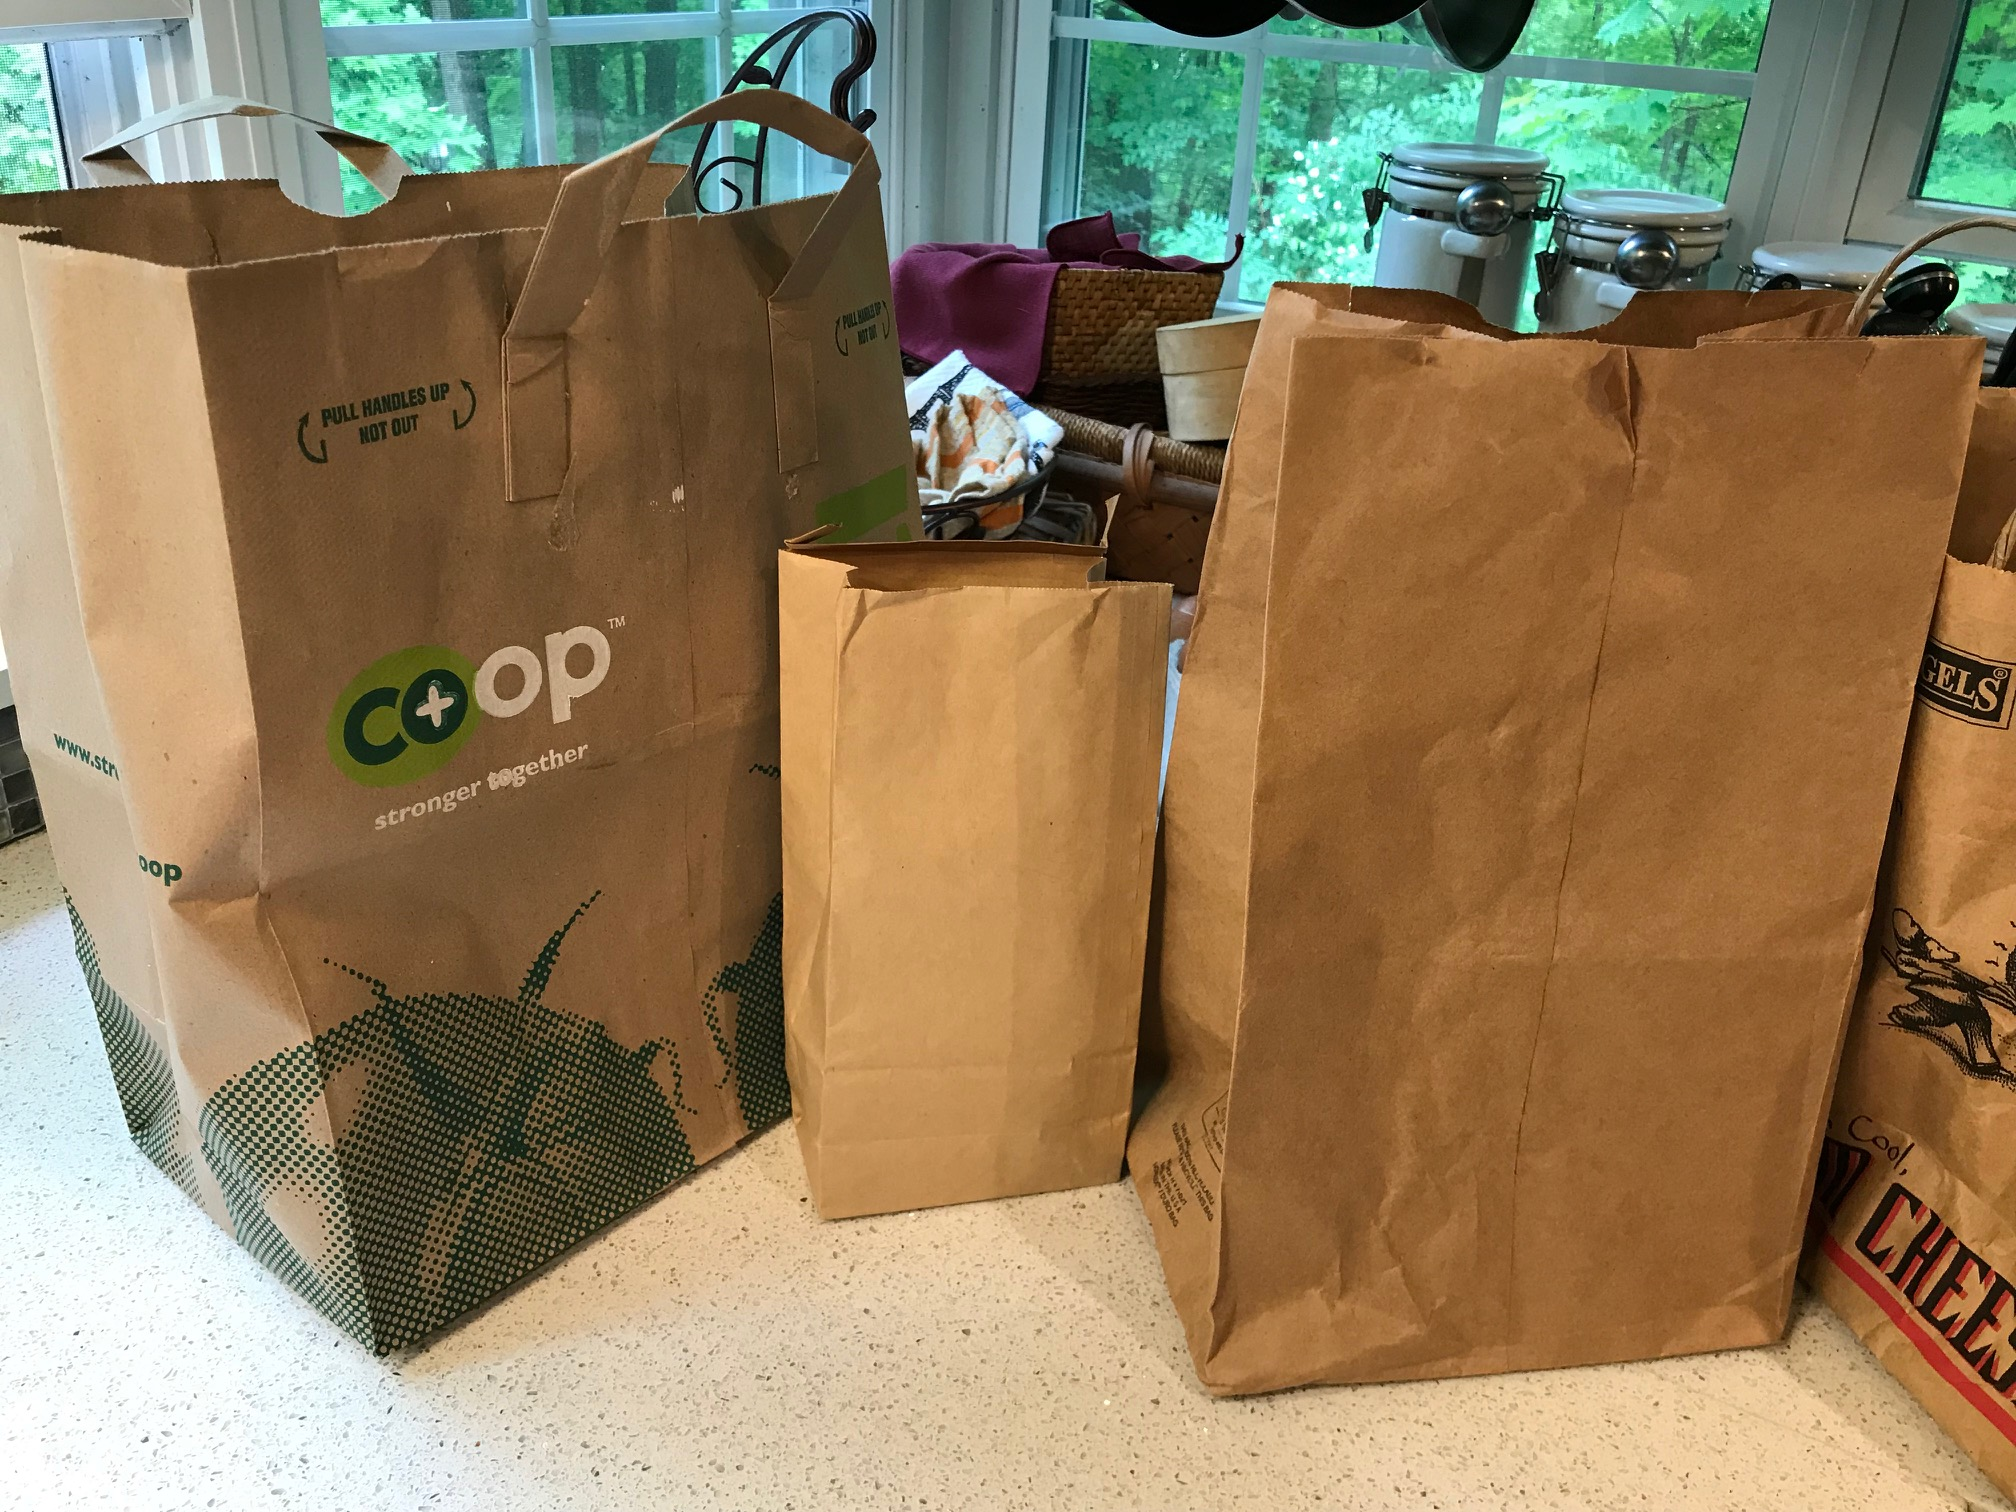 Paper bags provide solutions